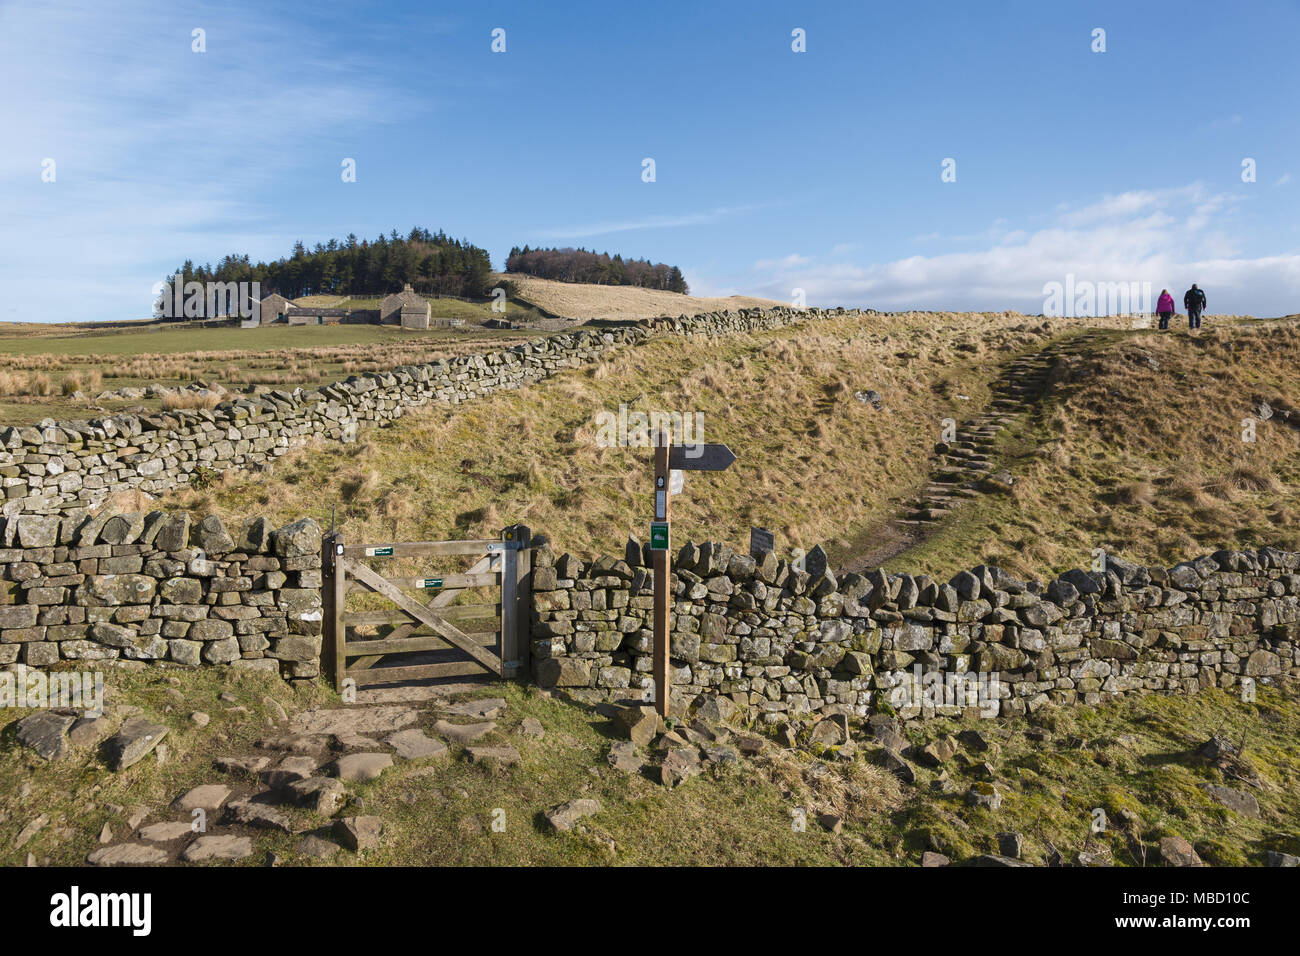 Hadrian's Wall in winter - two walkers at Milking Gap follow the Hadrian's Wall Path towards Hotbank Farm and Hotbank Crags - Stock Image